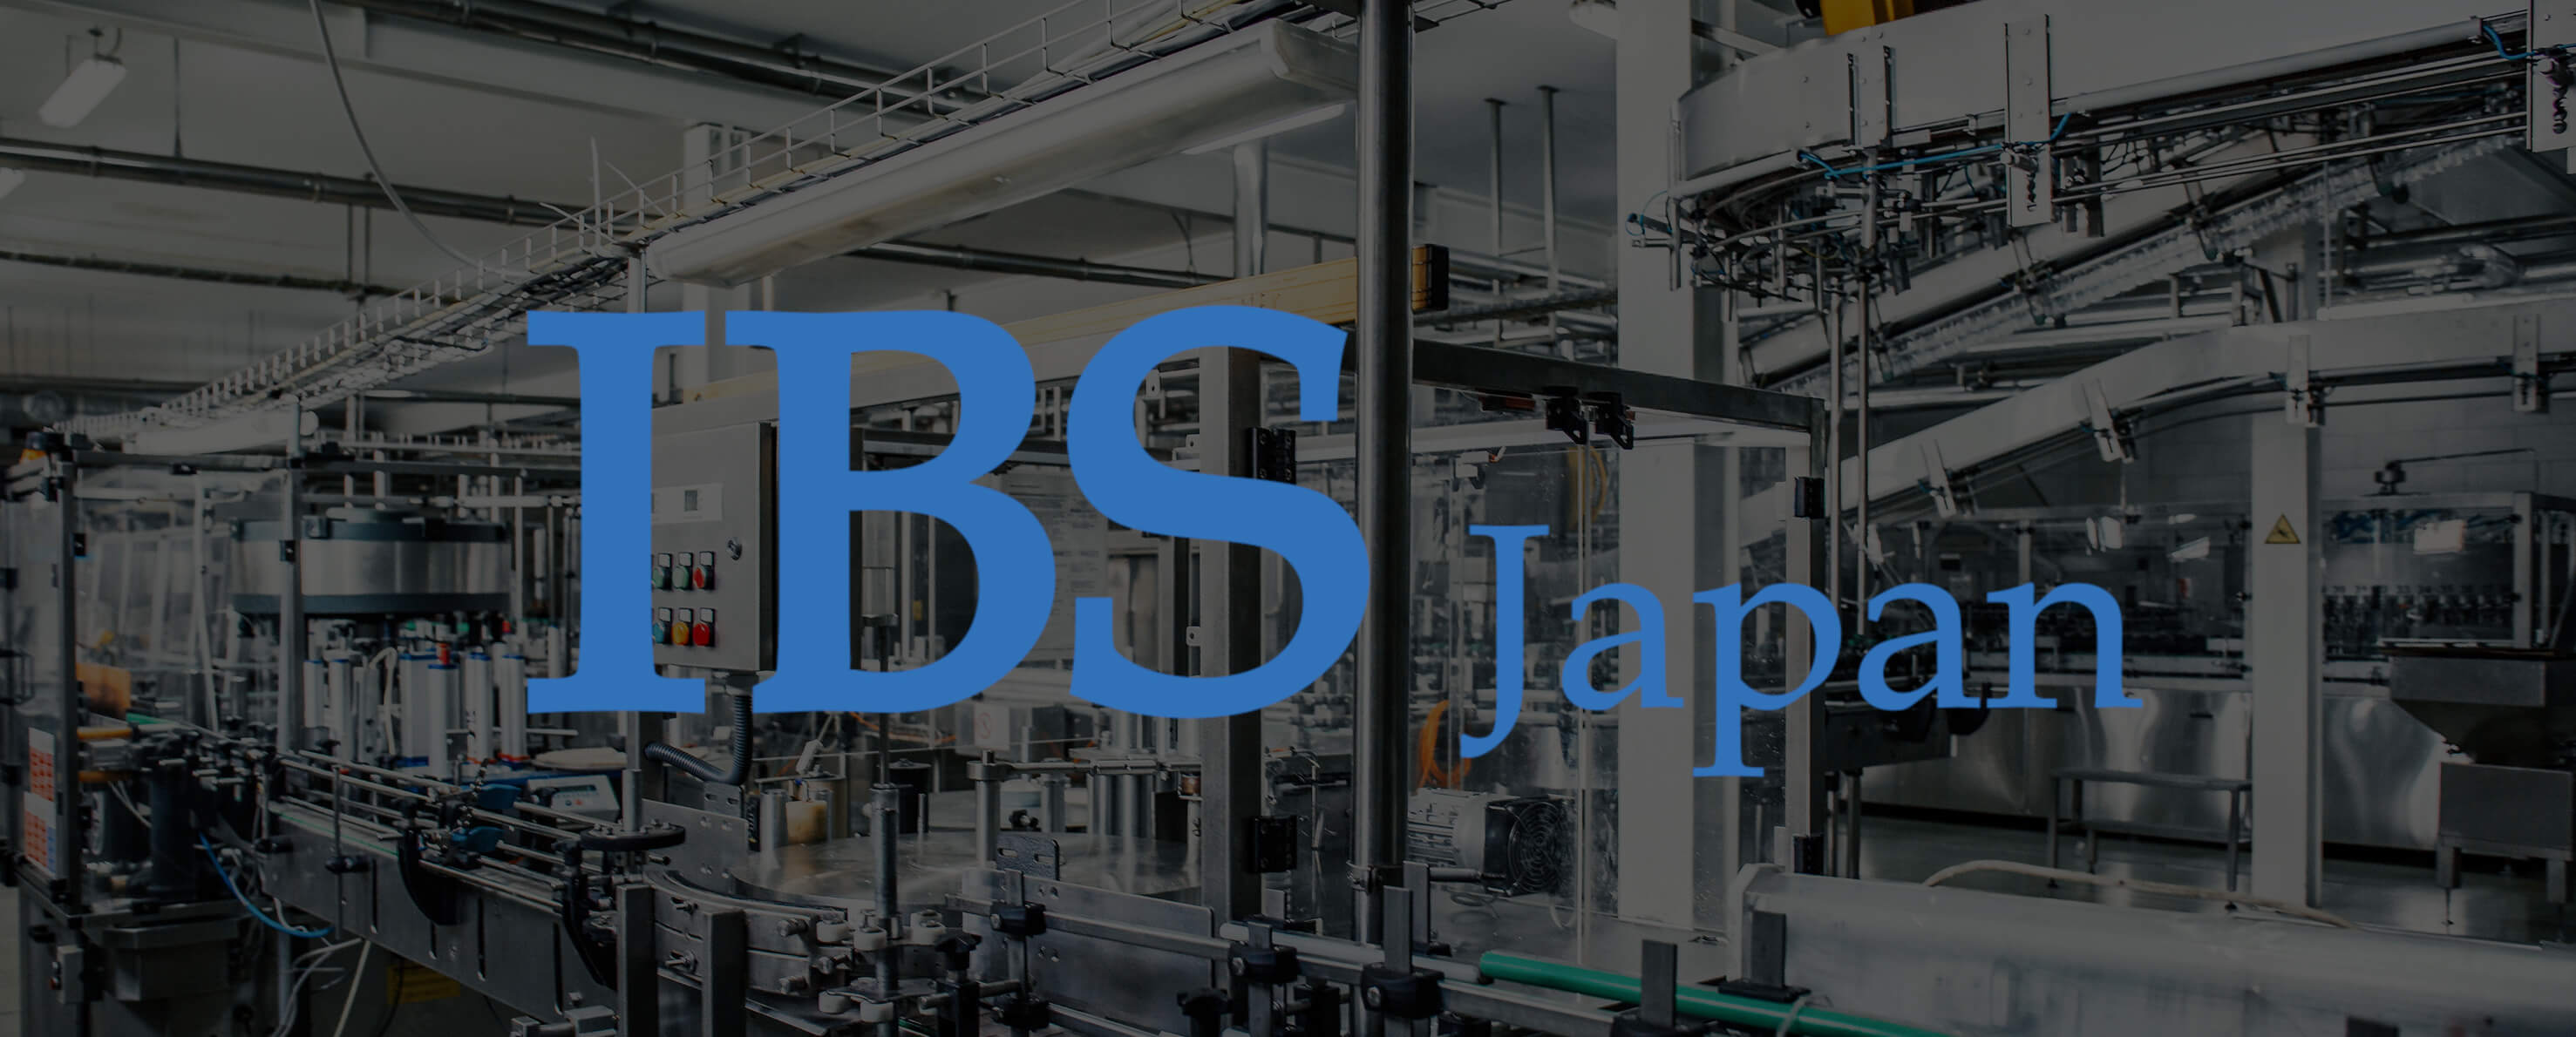 IBS Japan has long supplied the 'smart factory', energy and transportation markets in Japan with network connectivity products, such as routers, gateways and switches. By sourcing key technical components largely from outside Japan and collaborating with local systems integrators, IBS Japan caters to applications ranging from automotive Tier 1s to automated factory floors.